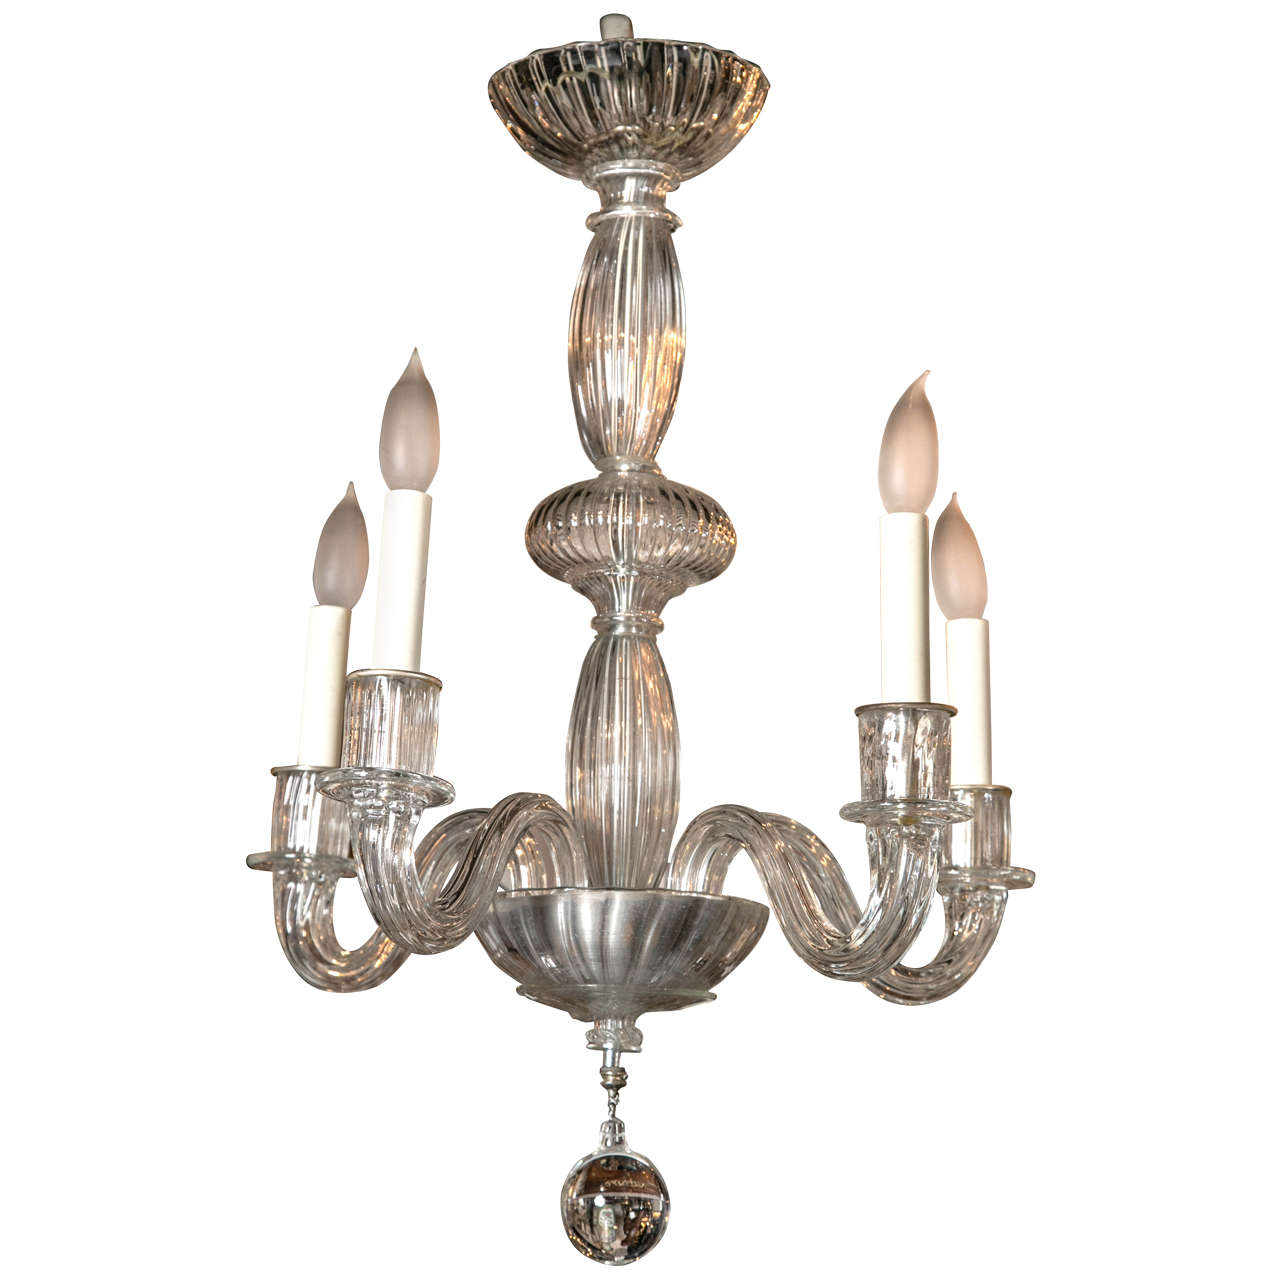 Venetian chandelier circa 1940s for sale at 1stdibs venetian chandelier circa 1940s for sale aloadofball Gallery